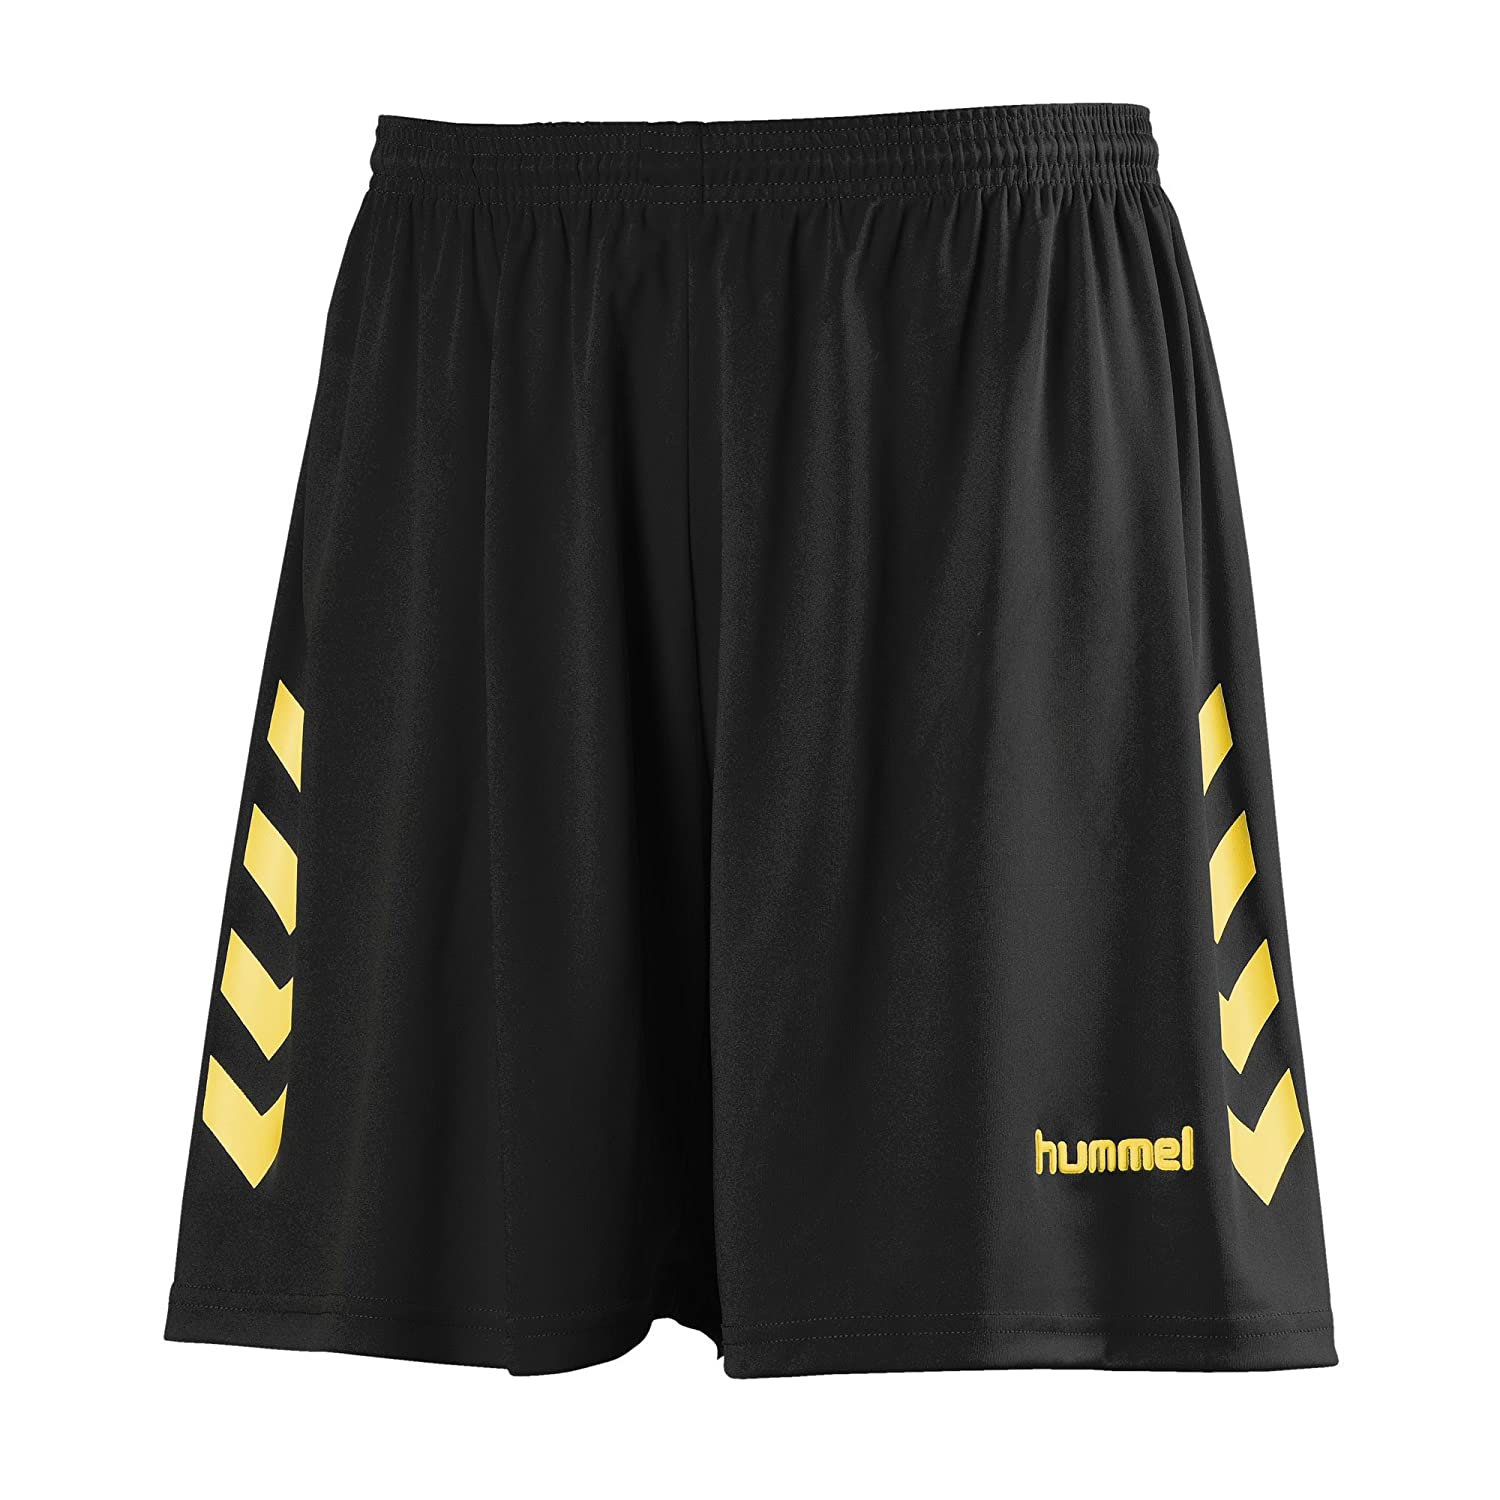 TALLA S. Hummel Short junior Chevrons